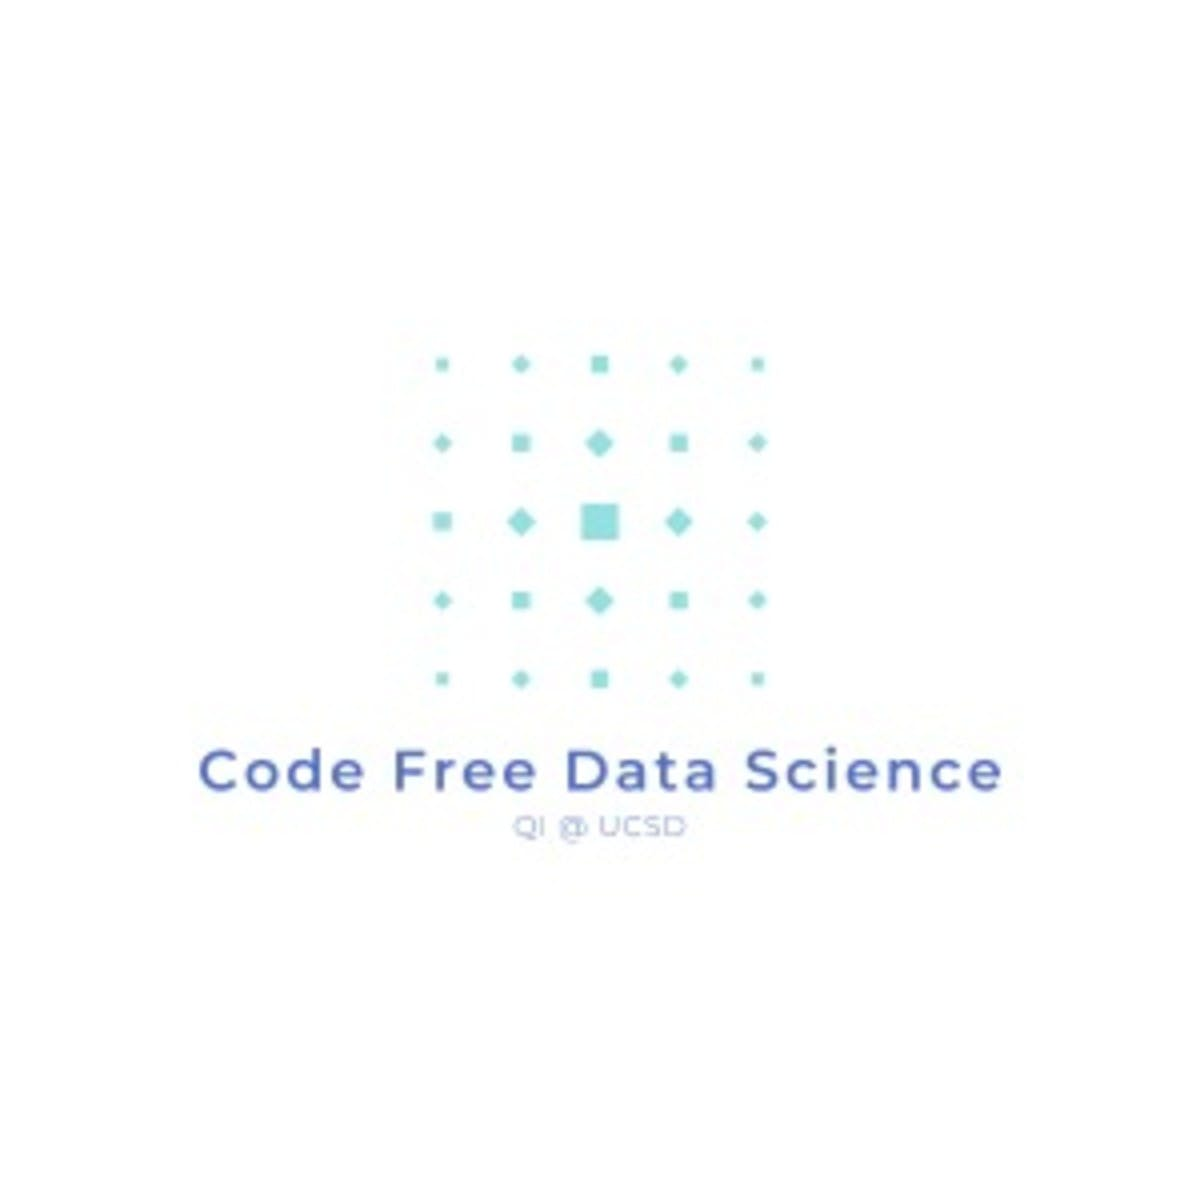 Code Free Data Science